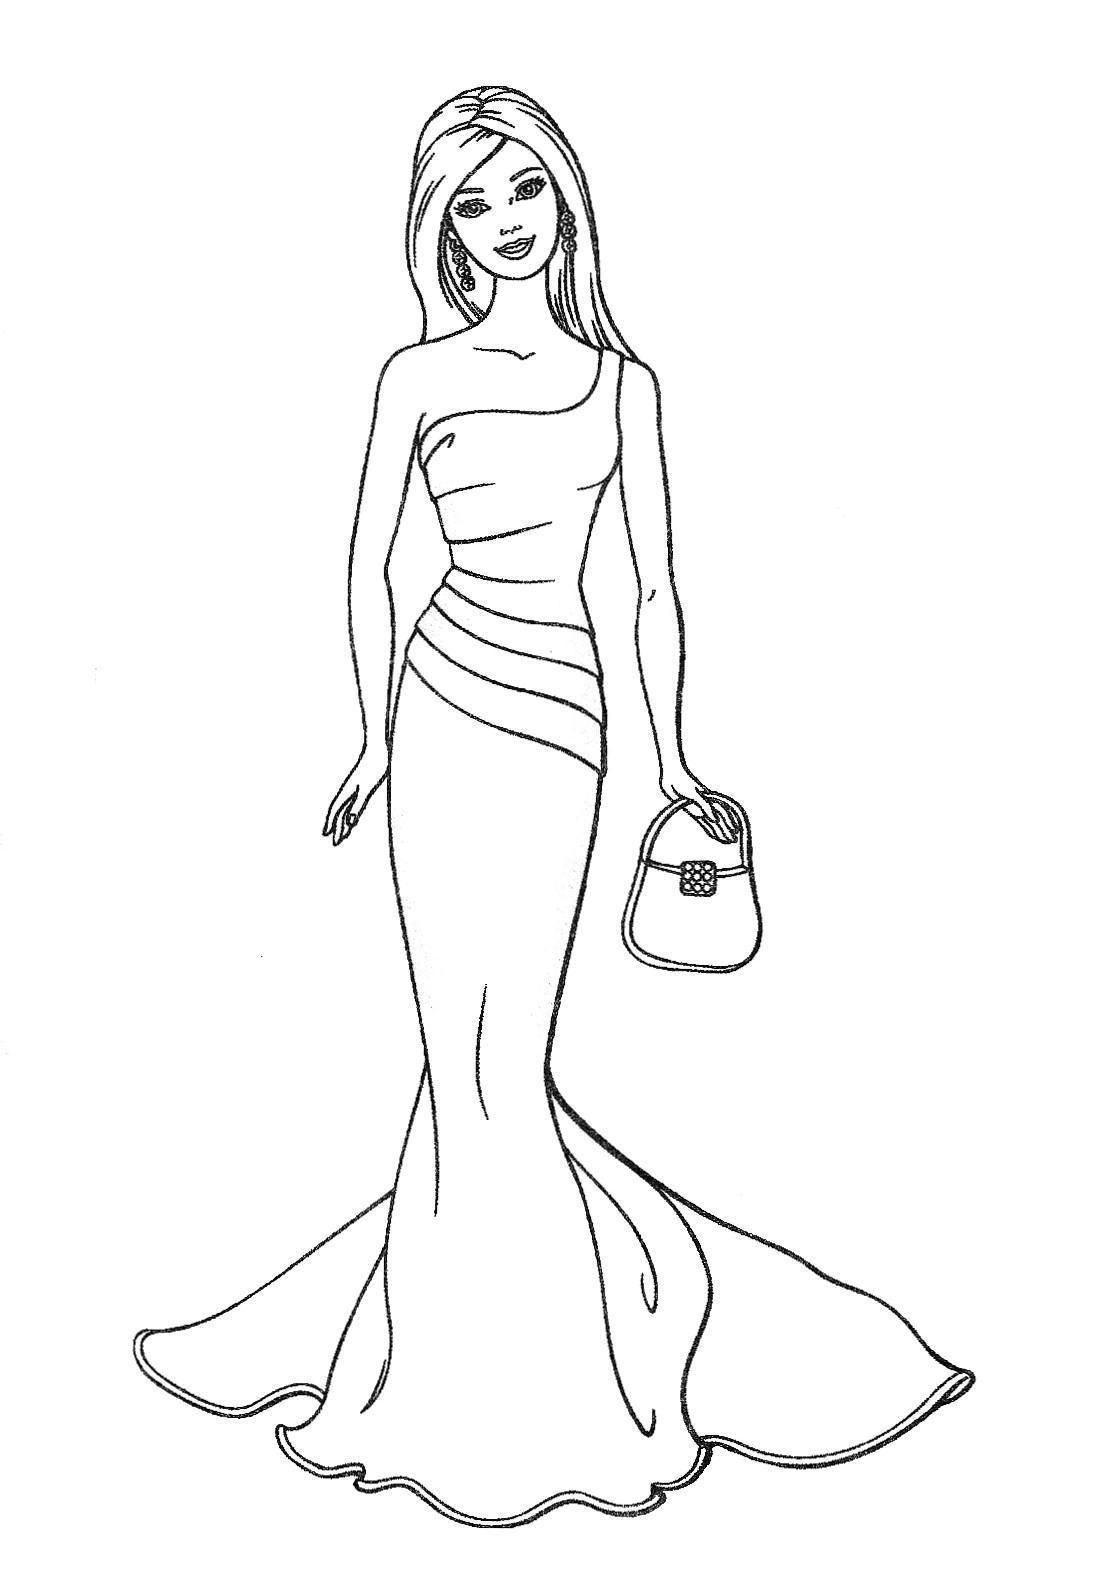 barbie coloring pages full size - photo#24